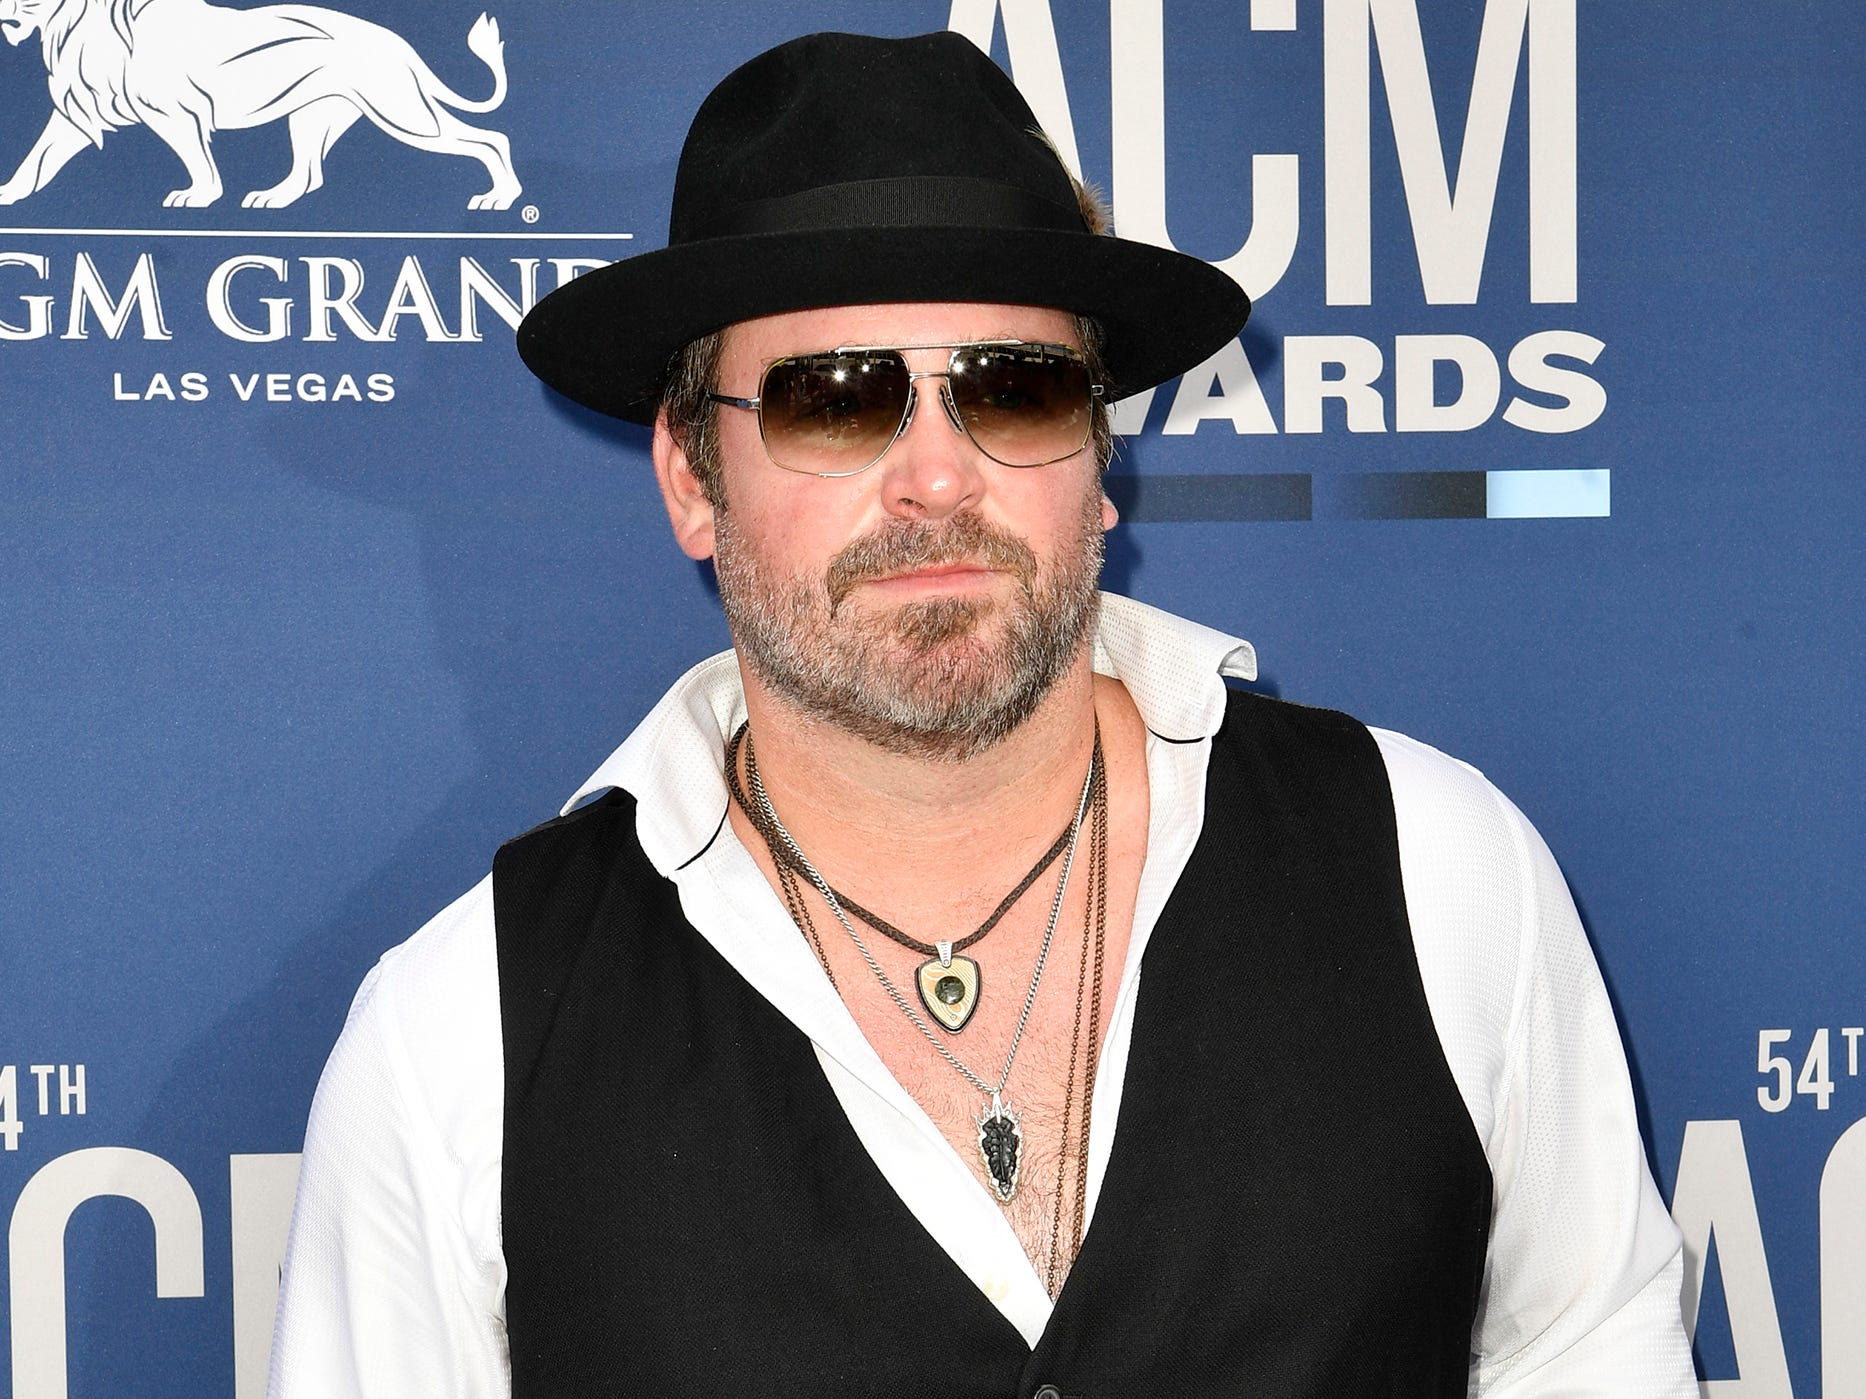 Lee Brice walks the red carpet at the 54TH Academy of Country Music Awards Sunday, April 7, 2019, in Las Vegas, Nev.